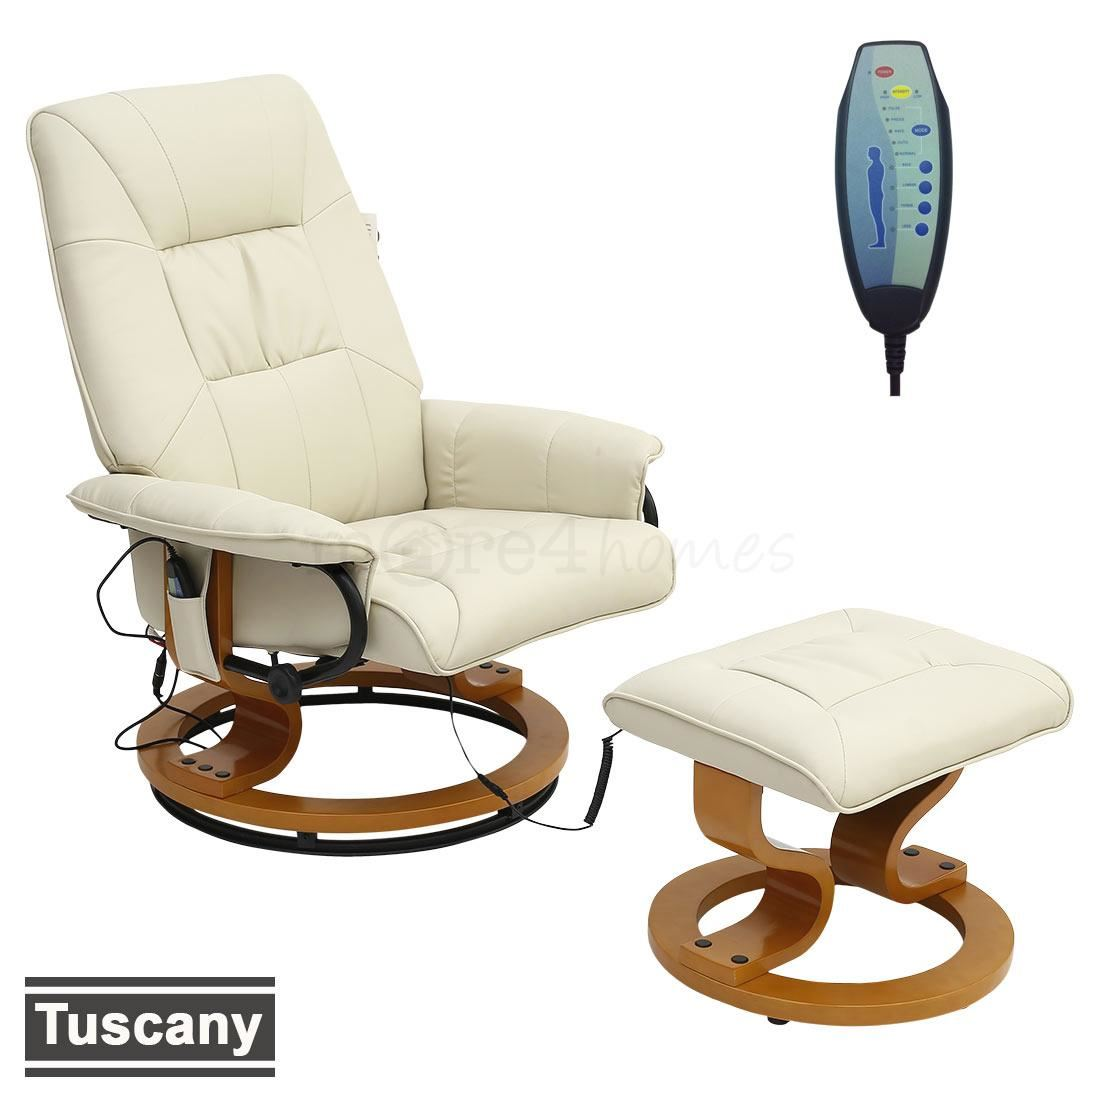 Tuscany Real Leather Cream Swivel Recliner Massage Chair W